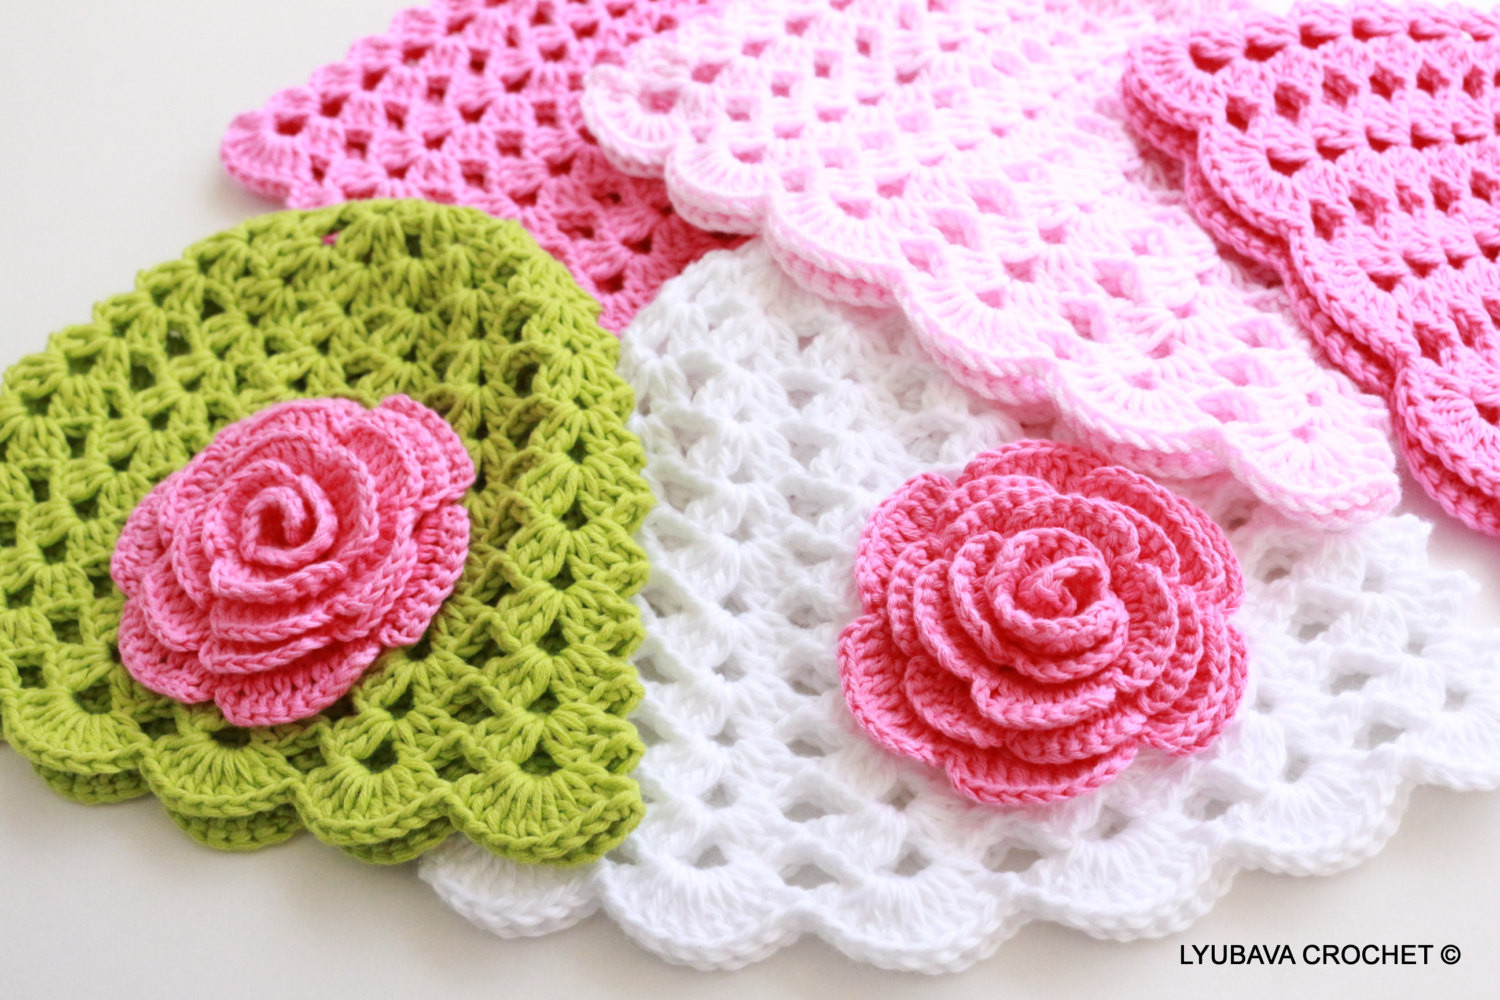 Best Of Crochet Baby Hat with Rose Flower Pattern Baby Girl Gift Diy Crochet Flowers for Hats Free Patterns Of Contemporary 43 Pics Crochet Flowers for Hats Free Patterns